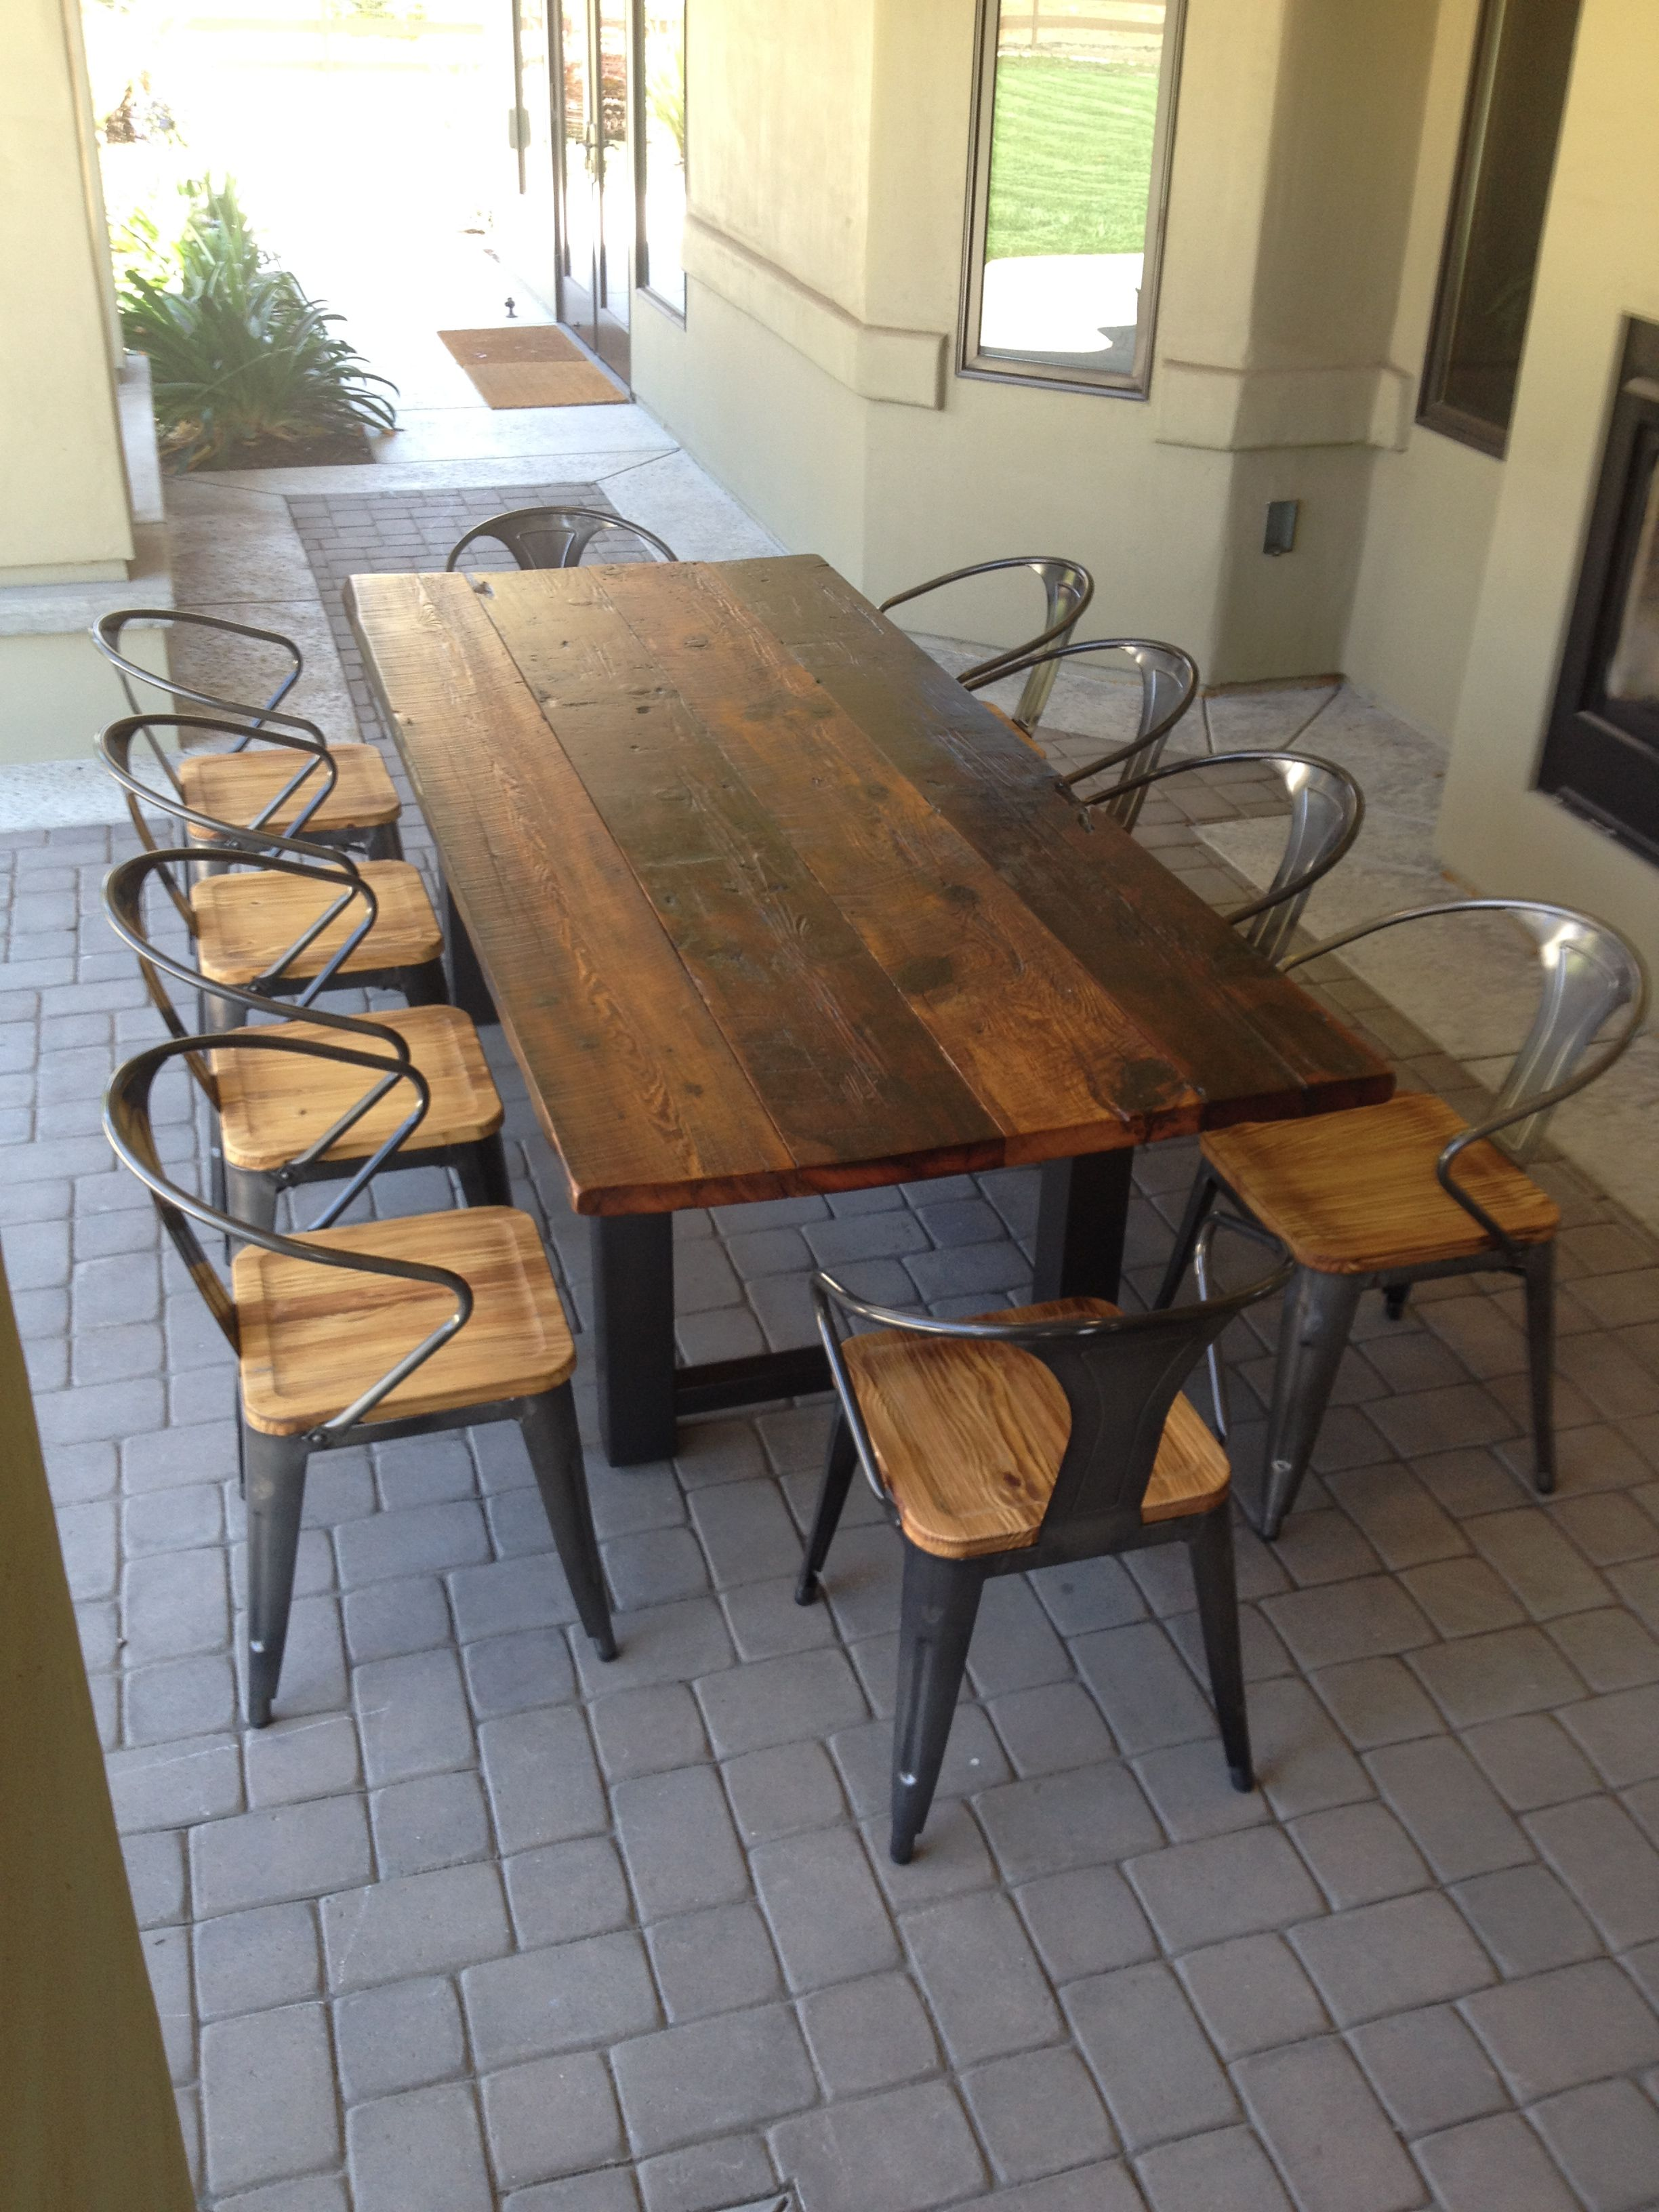 wood kitchen tables Reclaimed Wood and Steel Outdoor Dining Table 1